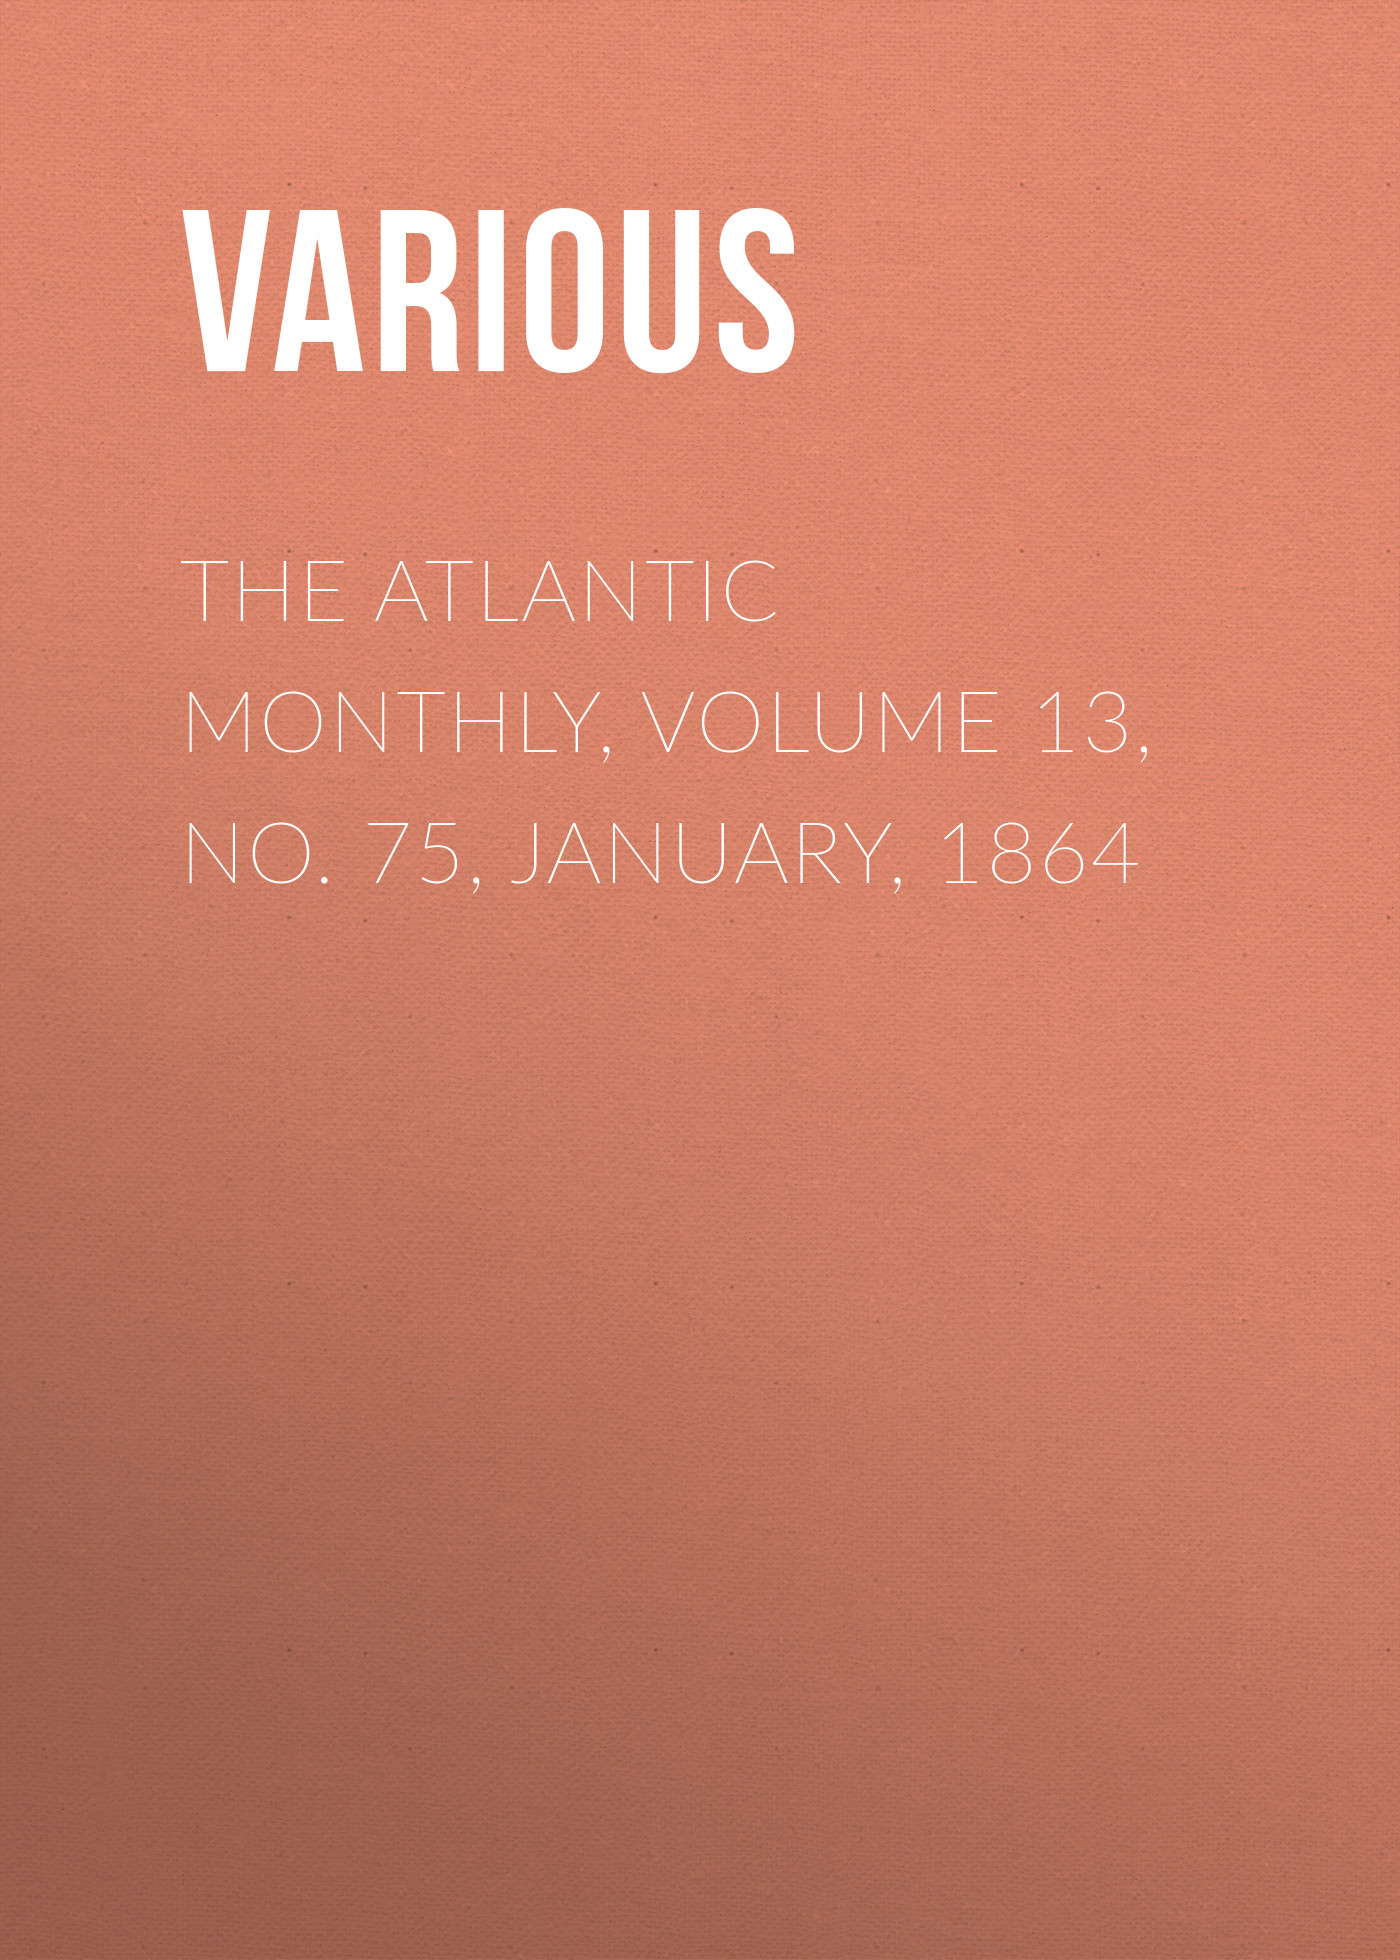 Various The Atlantic Monthly, Volume 13, No. 75, January, 1864 various the atlantic monthly volume 11 no 63 january 1863